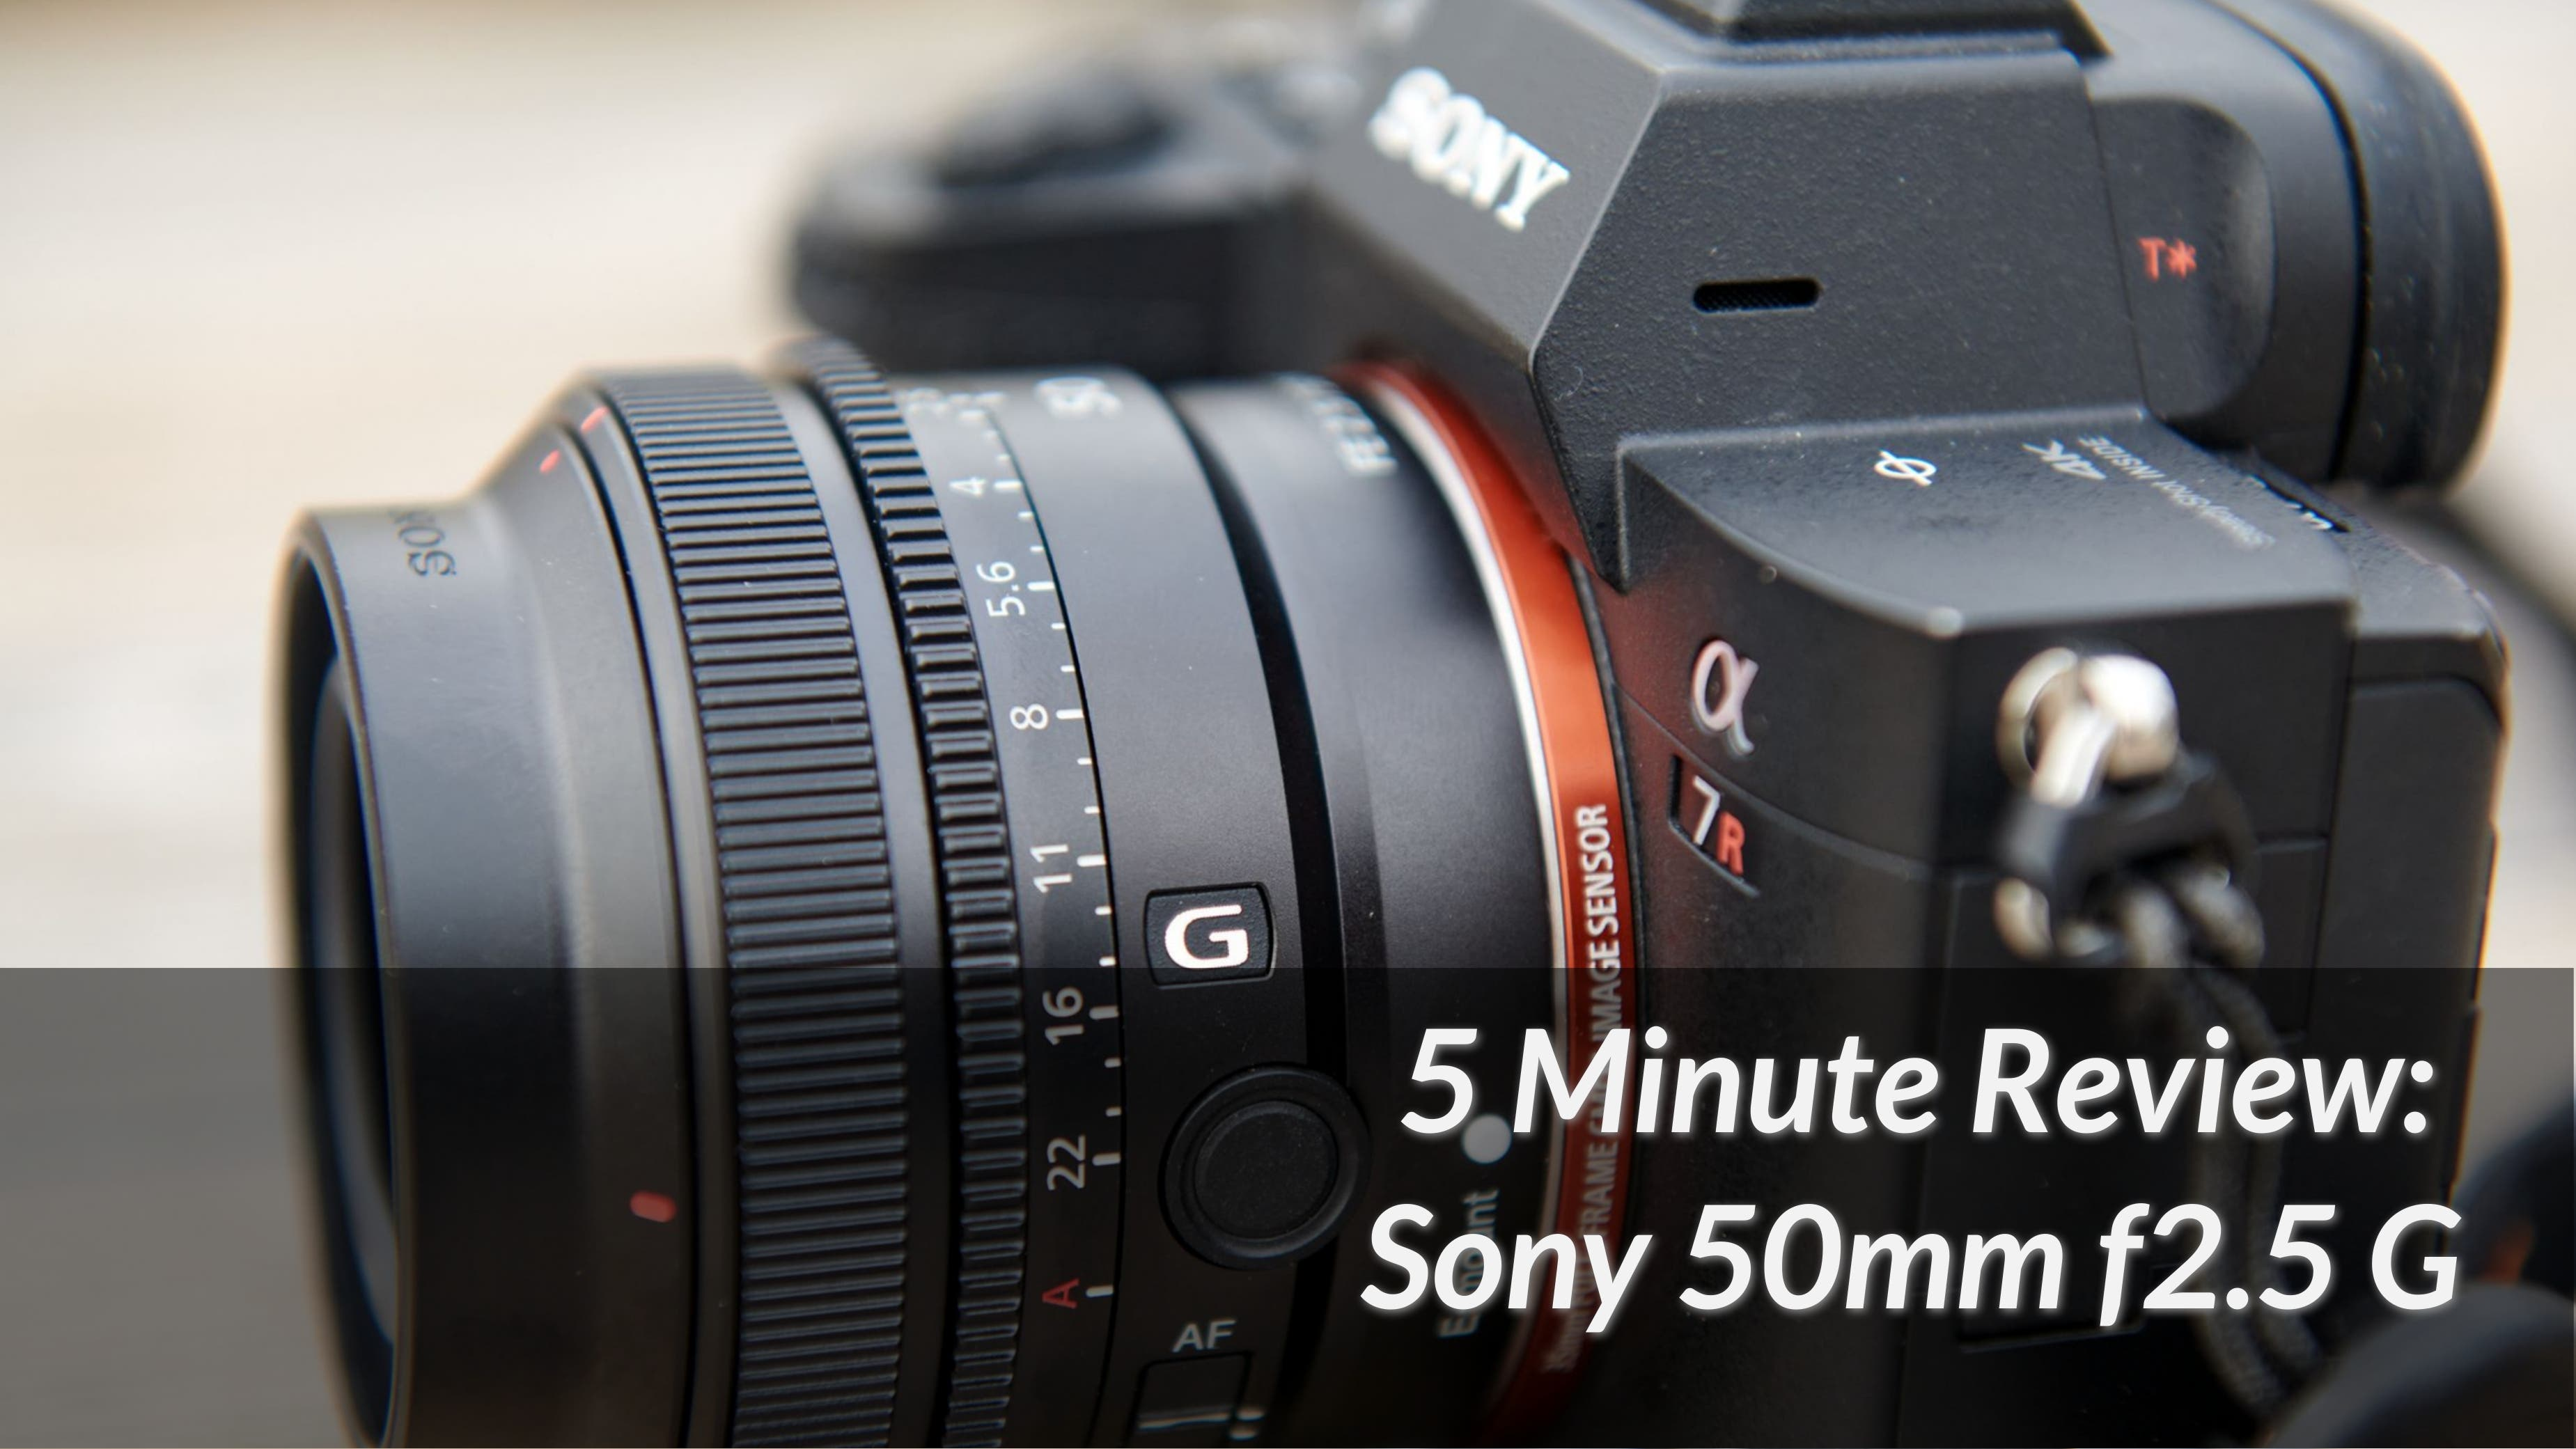 5 Minute Review: The Sony 50mm F2.5 G Is Their Weirdest 50